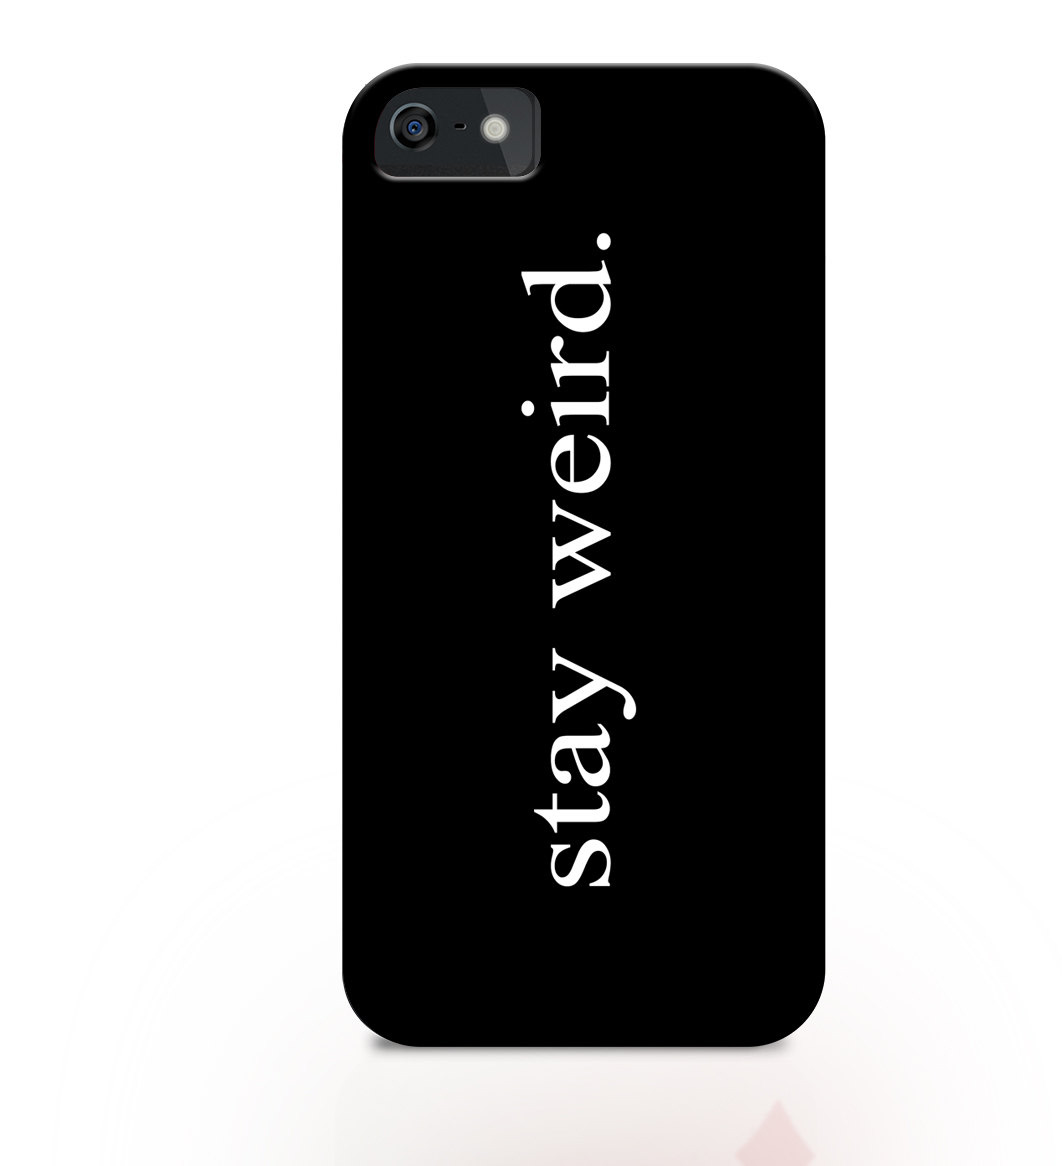 Stay weird iphone case, tumblr iphone case quotes, tumblr